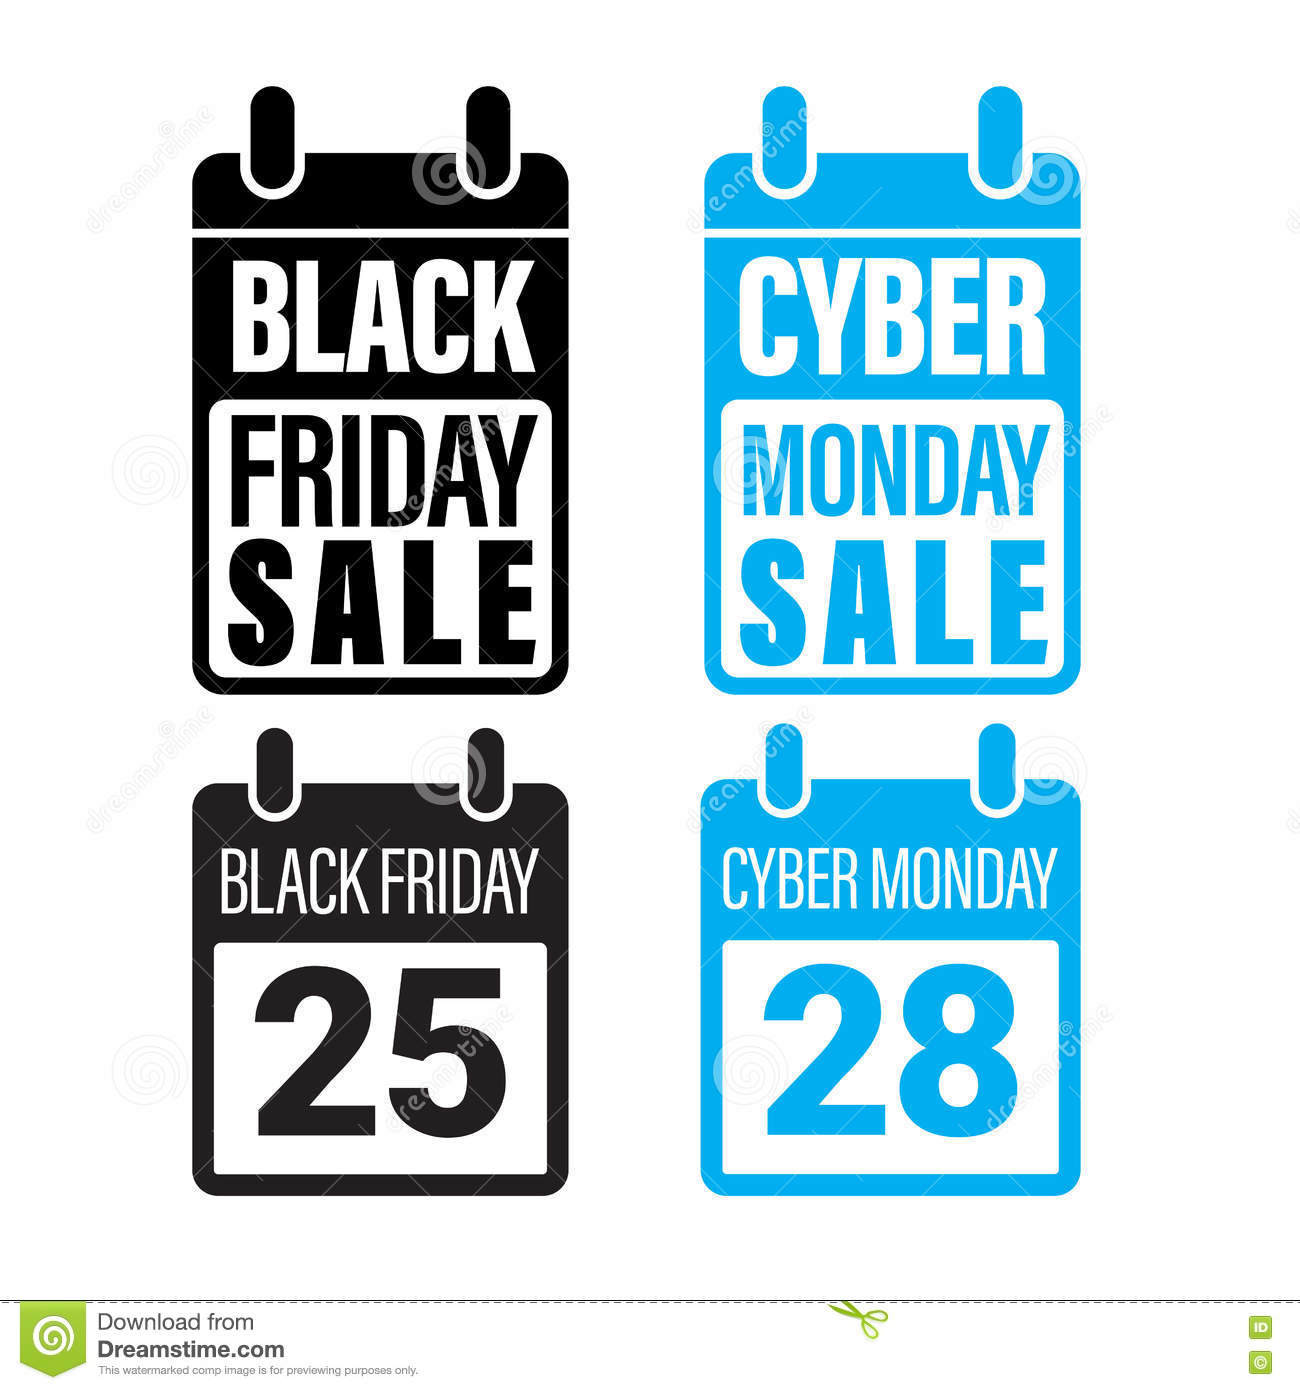 Shop black friday online